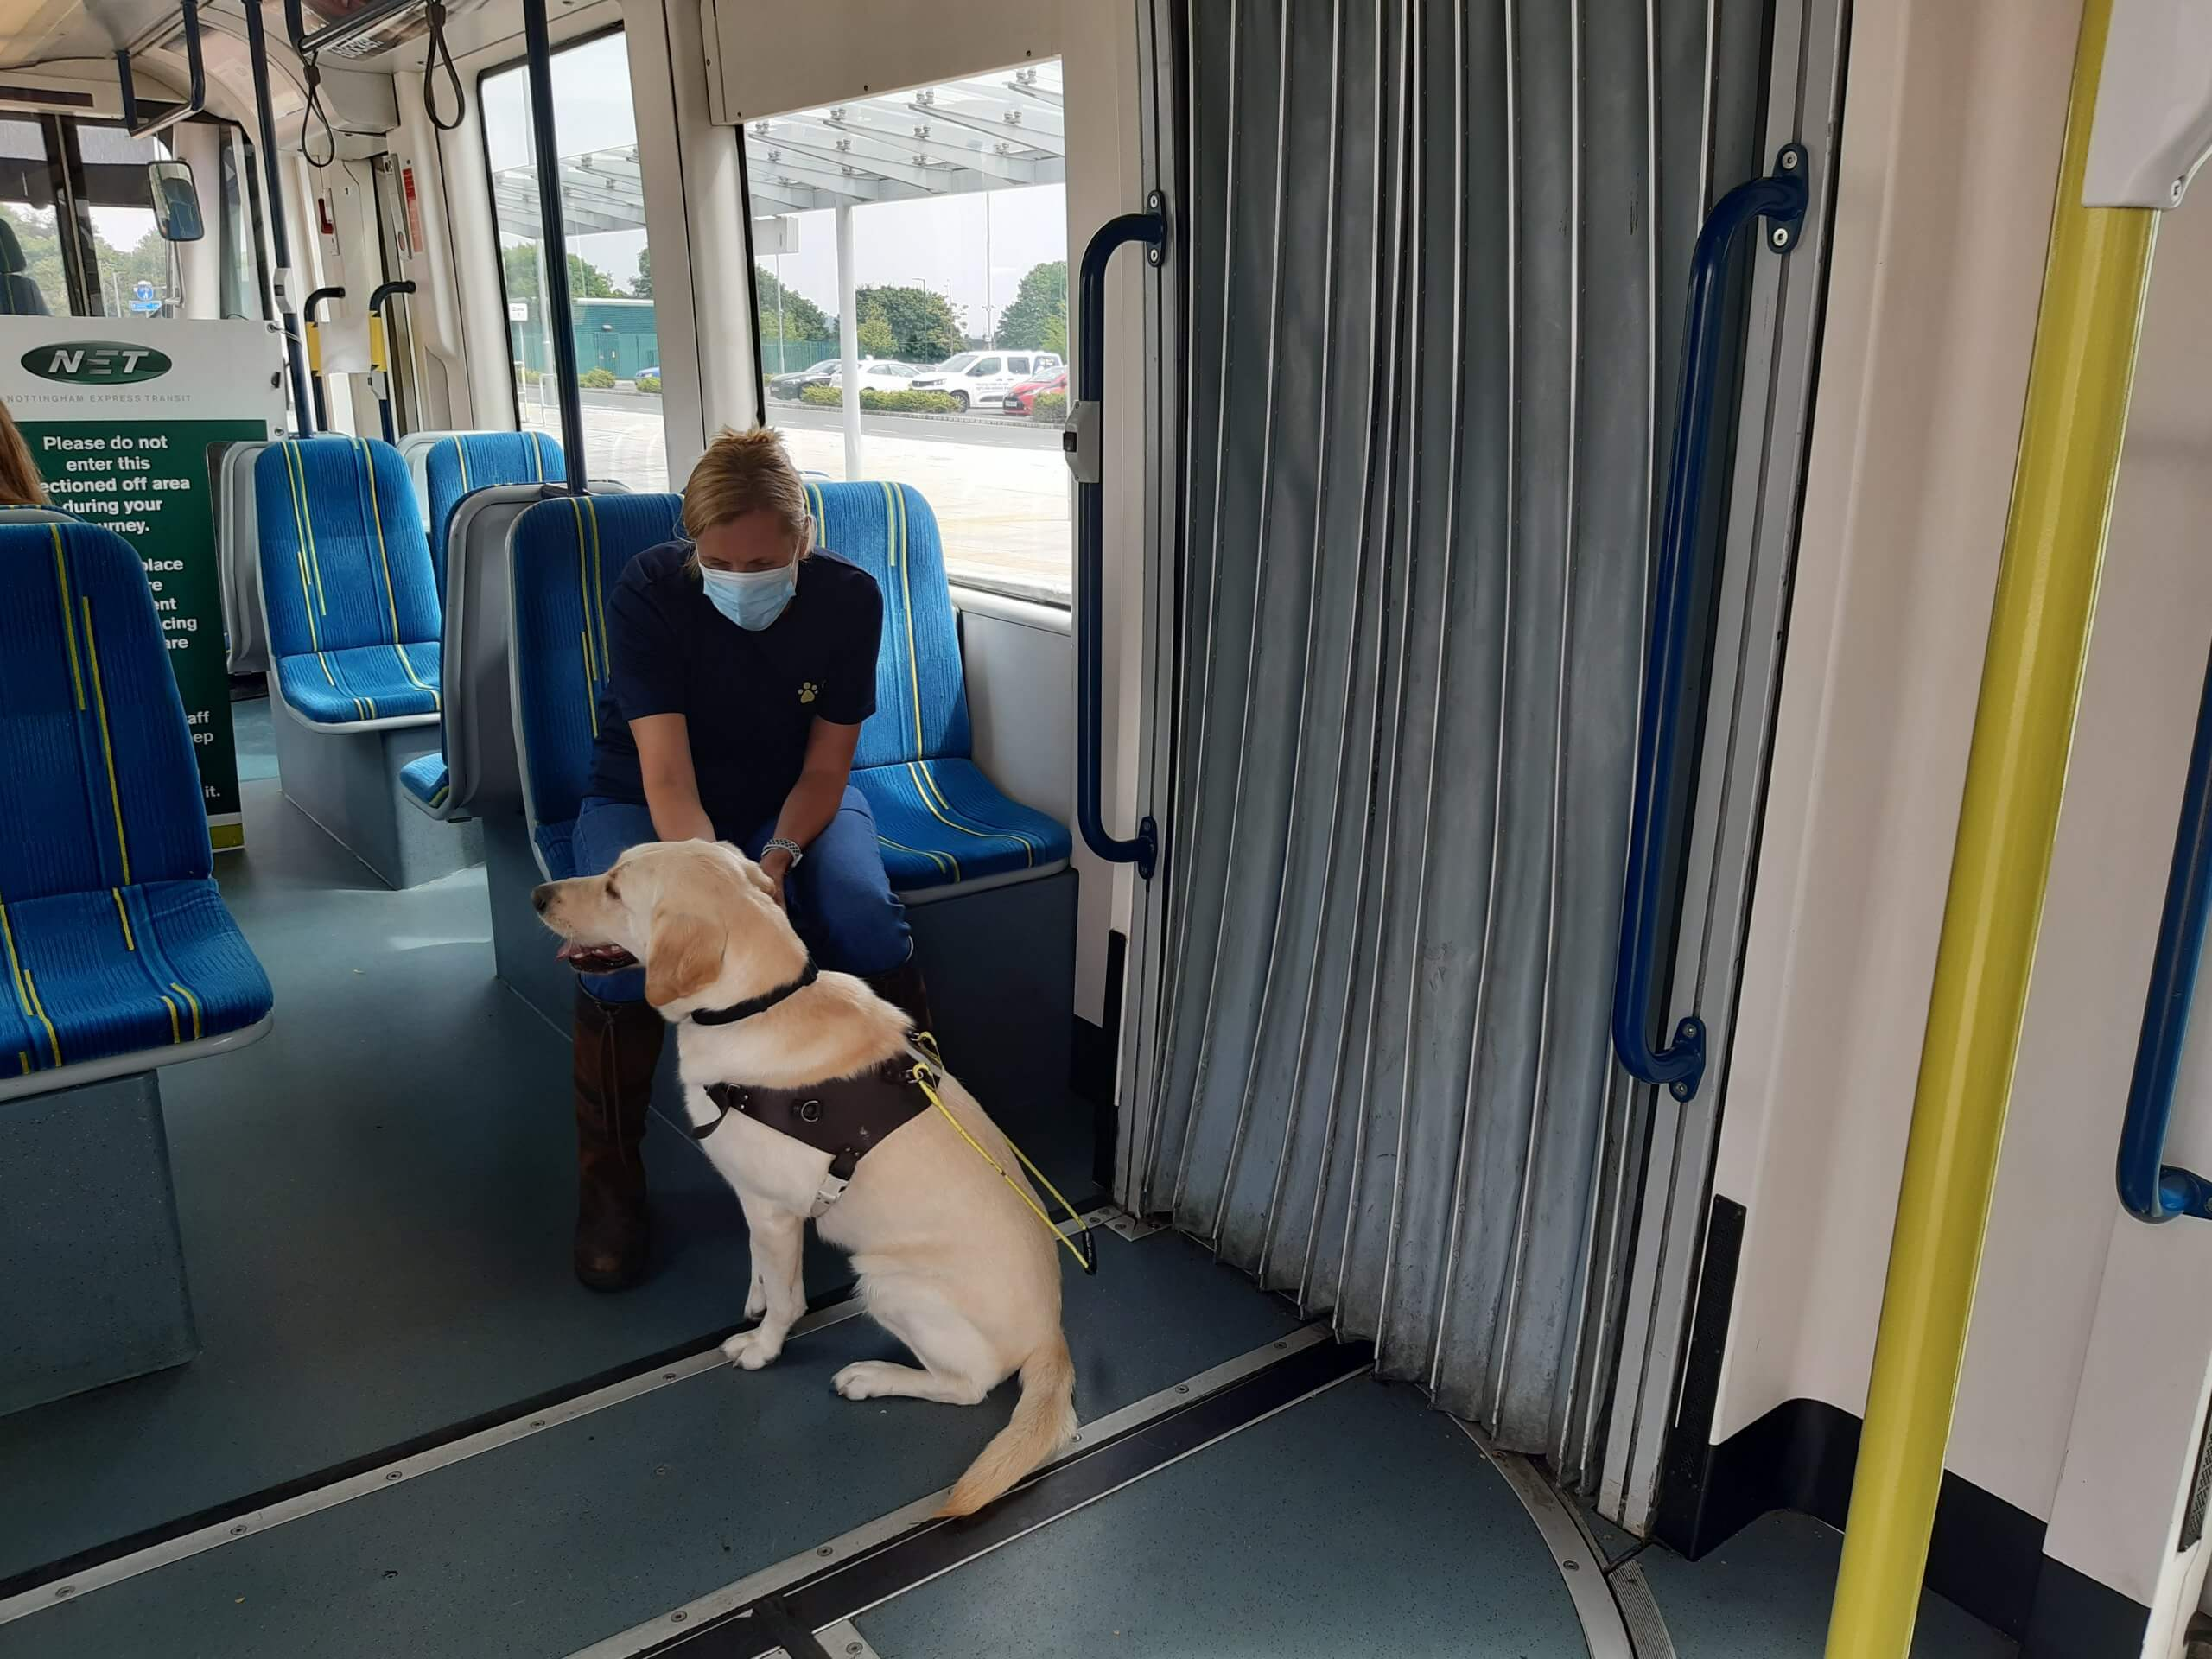 A guide dog training on a tram